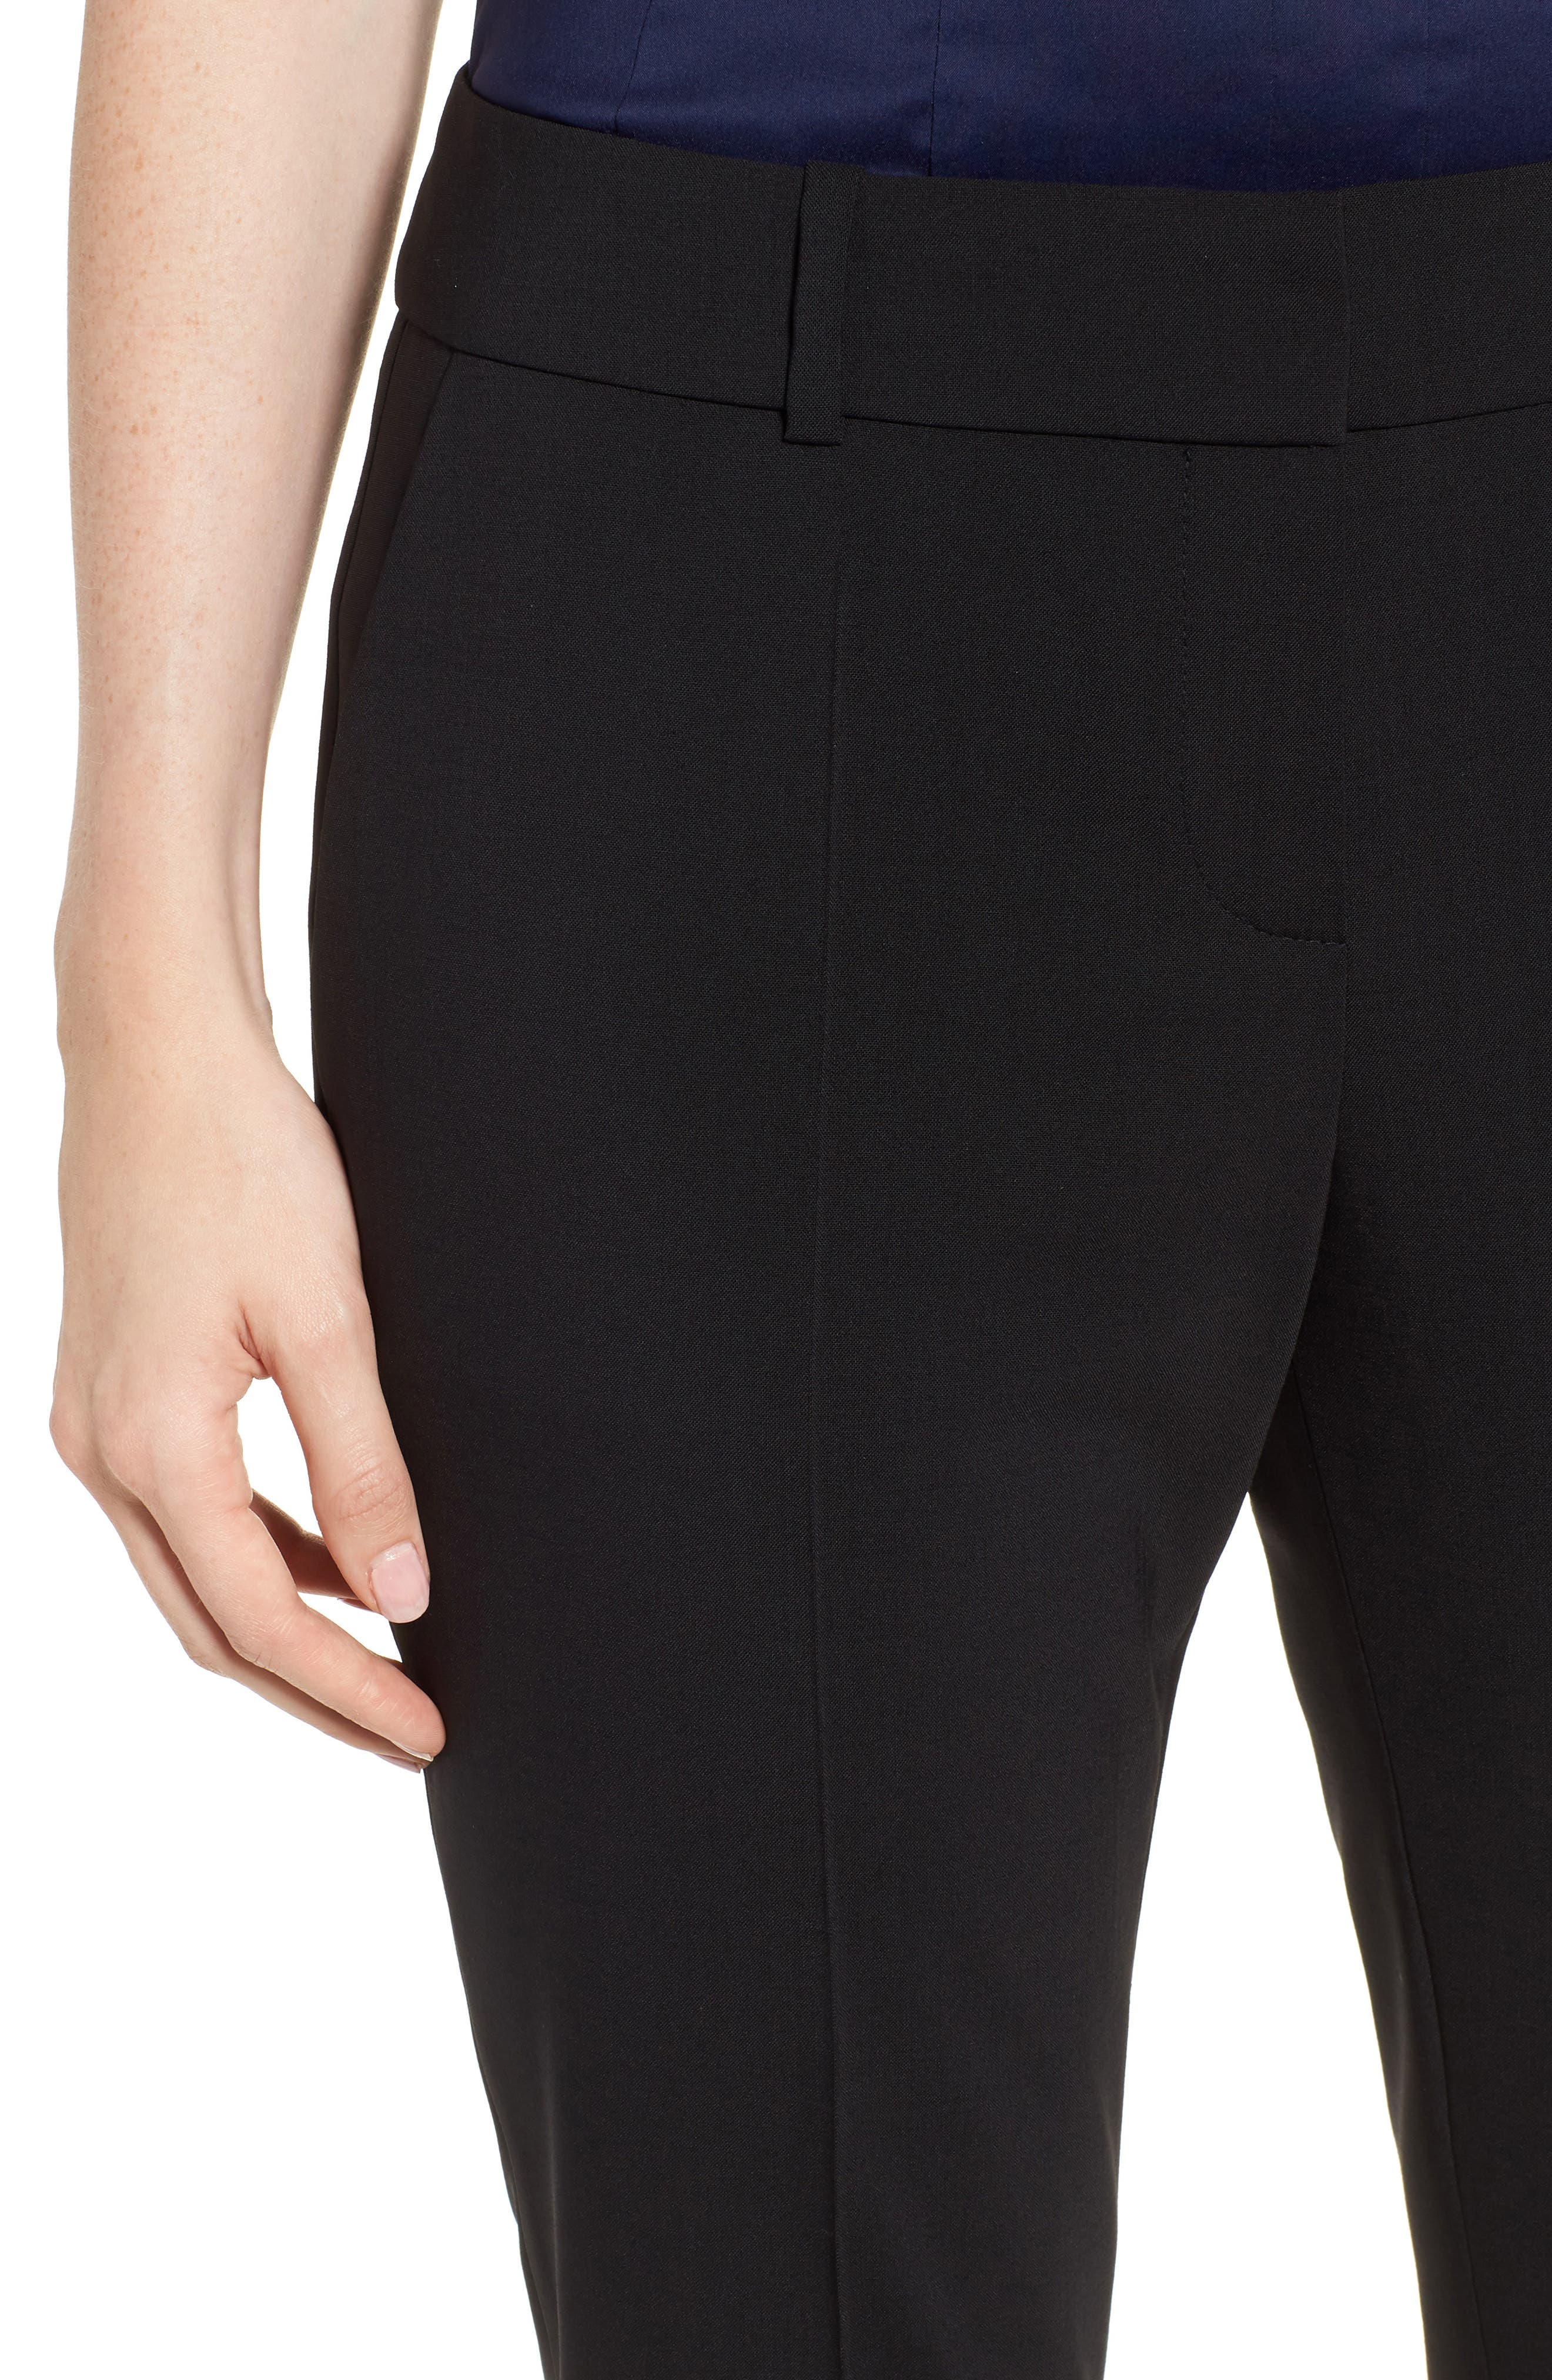 Talenara Tropical Stretch Wool Ankle Trousers,                             Alternate thumbnail 4, color,                             Black